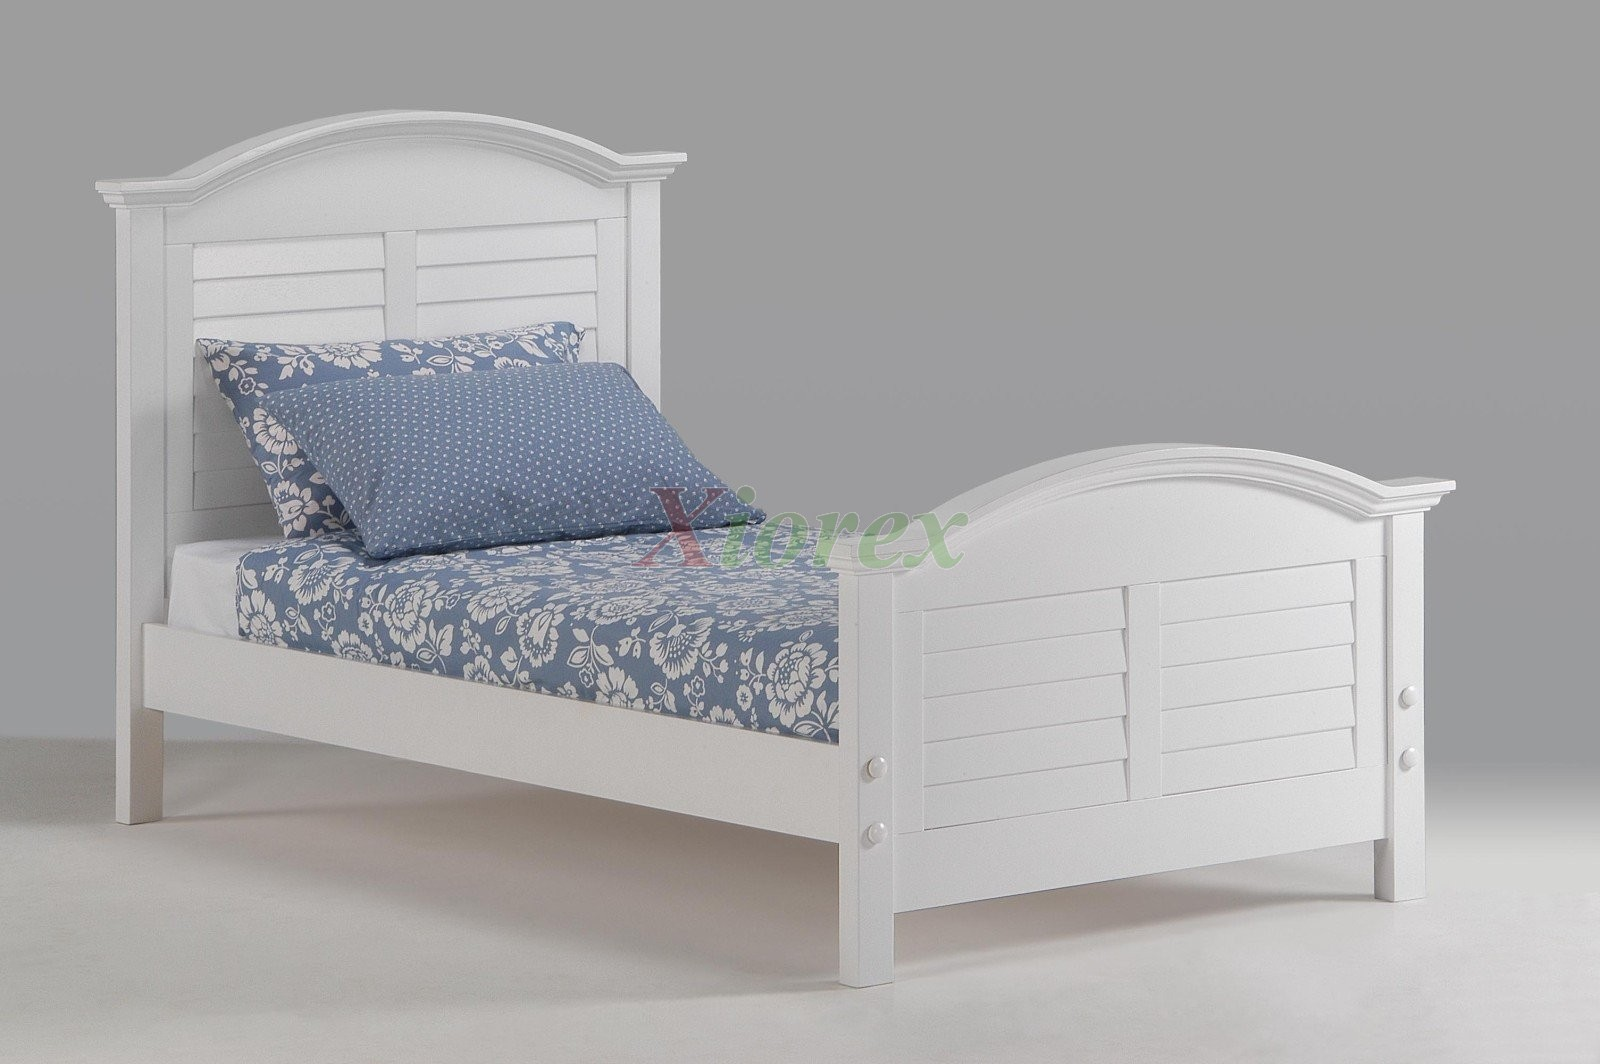 White Double Bed With Mattress White Bed For Girls Night And Day Sandpiper Bed With